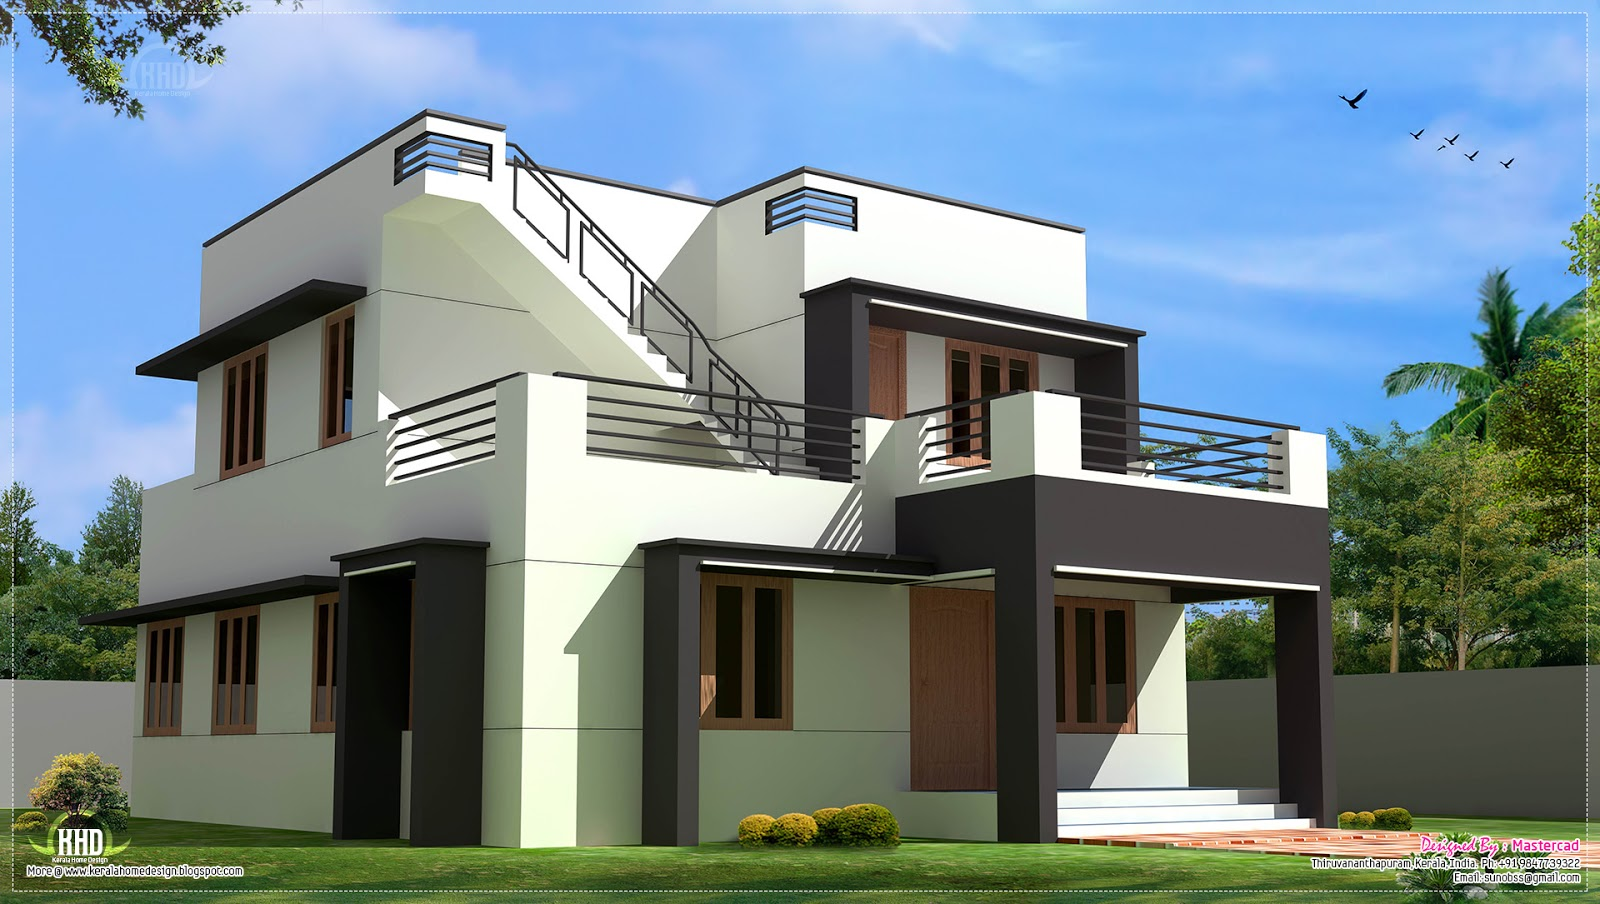 Modern house design in 1700 kerala home design for In ground home designs